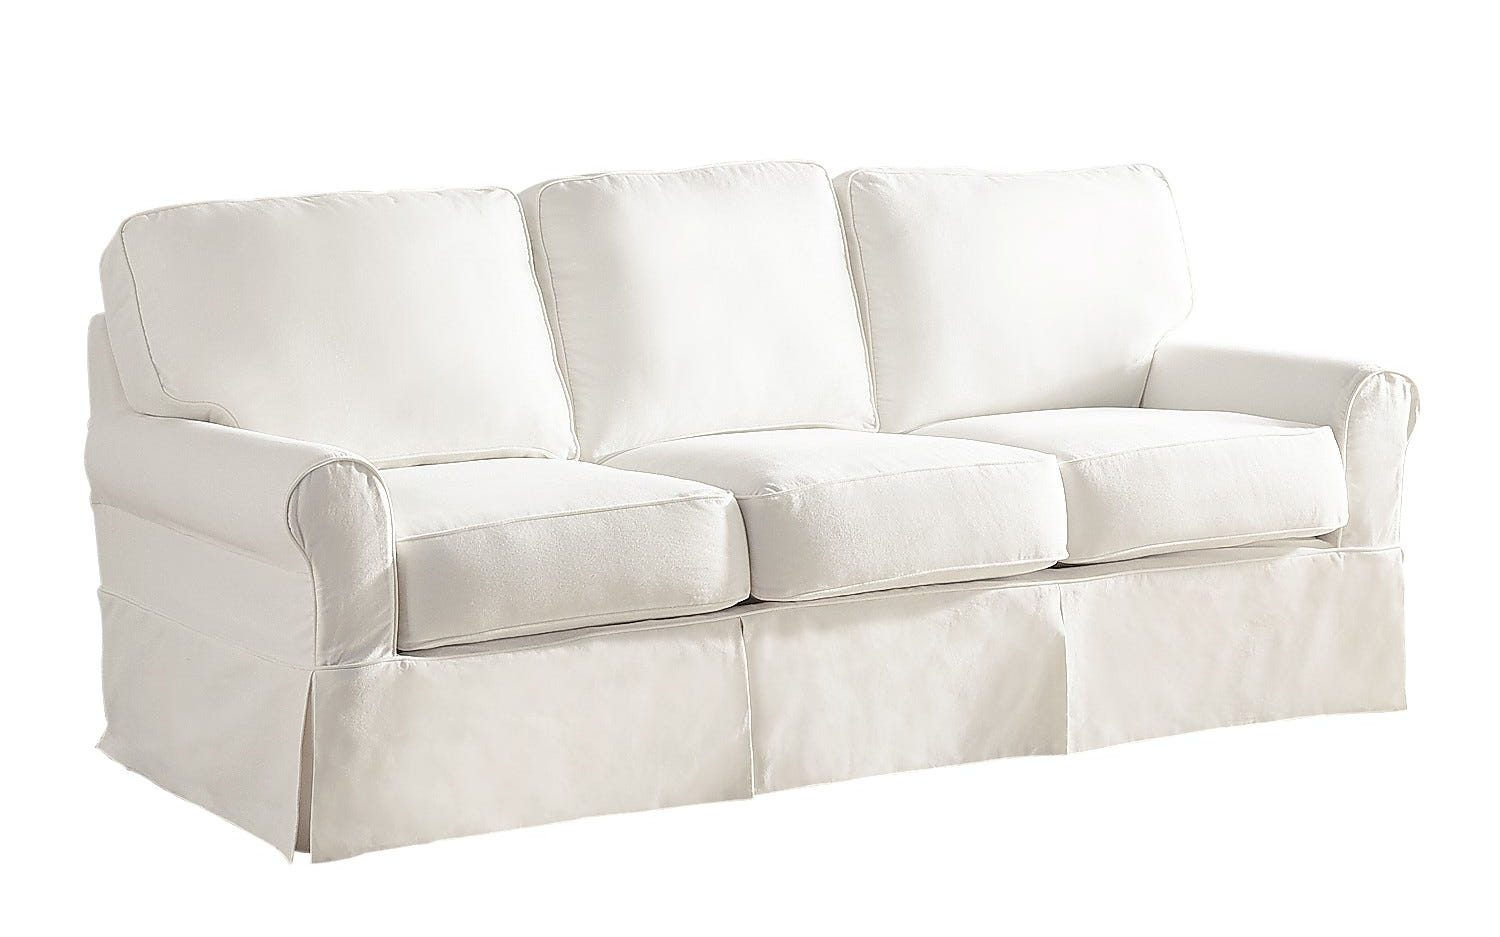 The Best Kid-Friendly White Sofas (They do Exist!) - Kaitlin ...